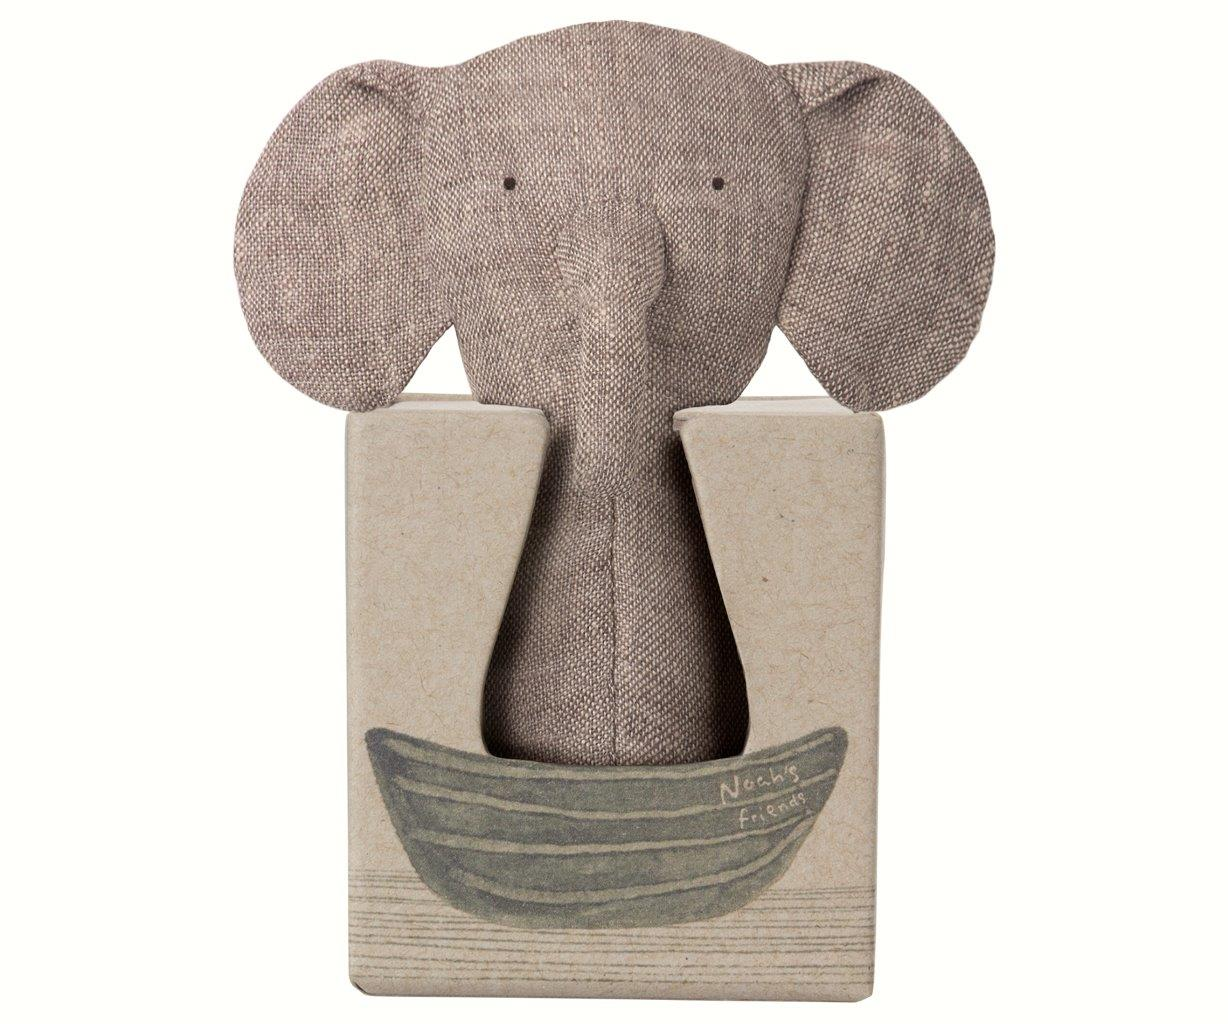 Maileg Maileg Noah's Friends - Elephant Rattle - Pearls & Swines